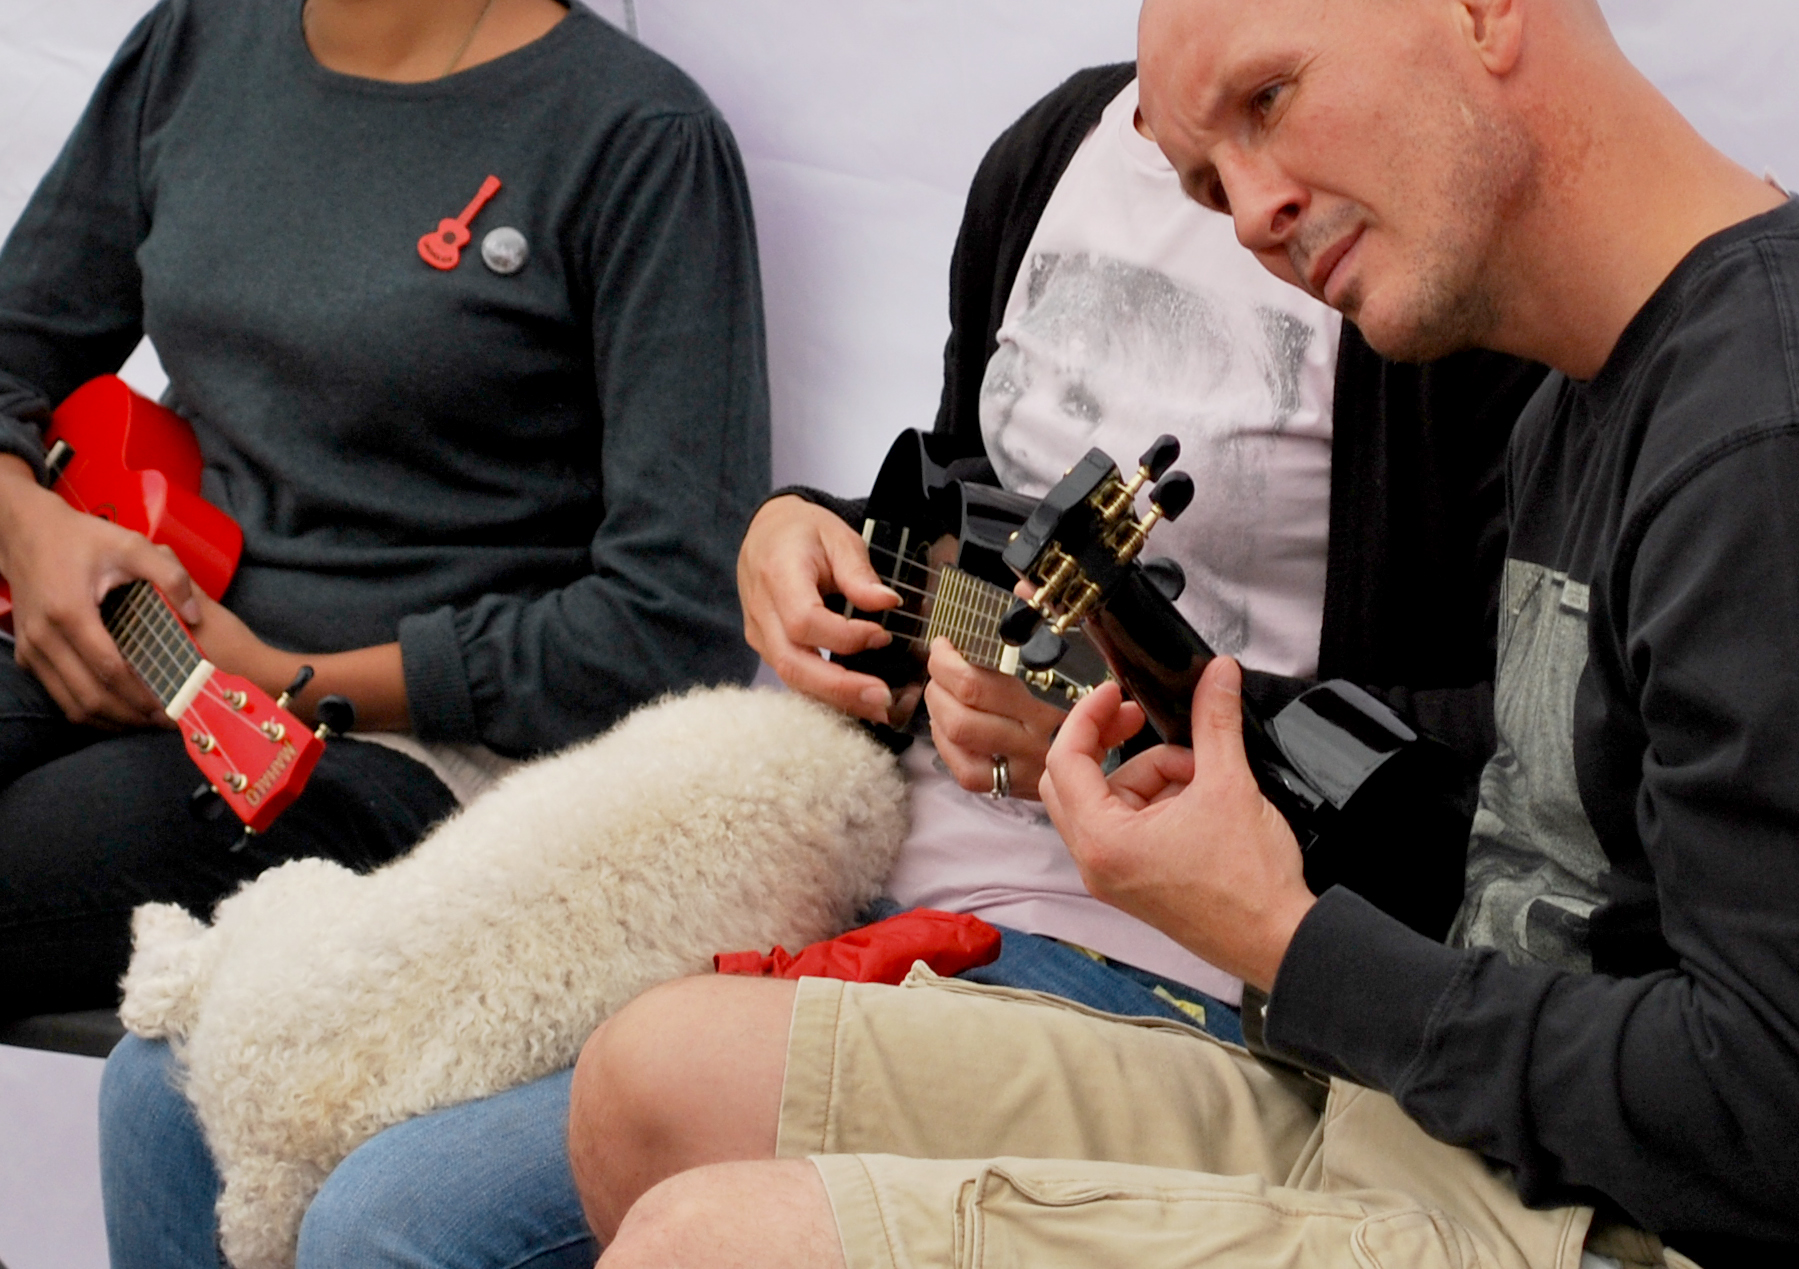 Locals learn how to play the Ukelele...even the dog was lulled to sleep by the sweet tones of Twinkle Twinkle Little Star